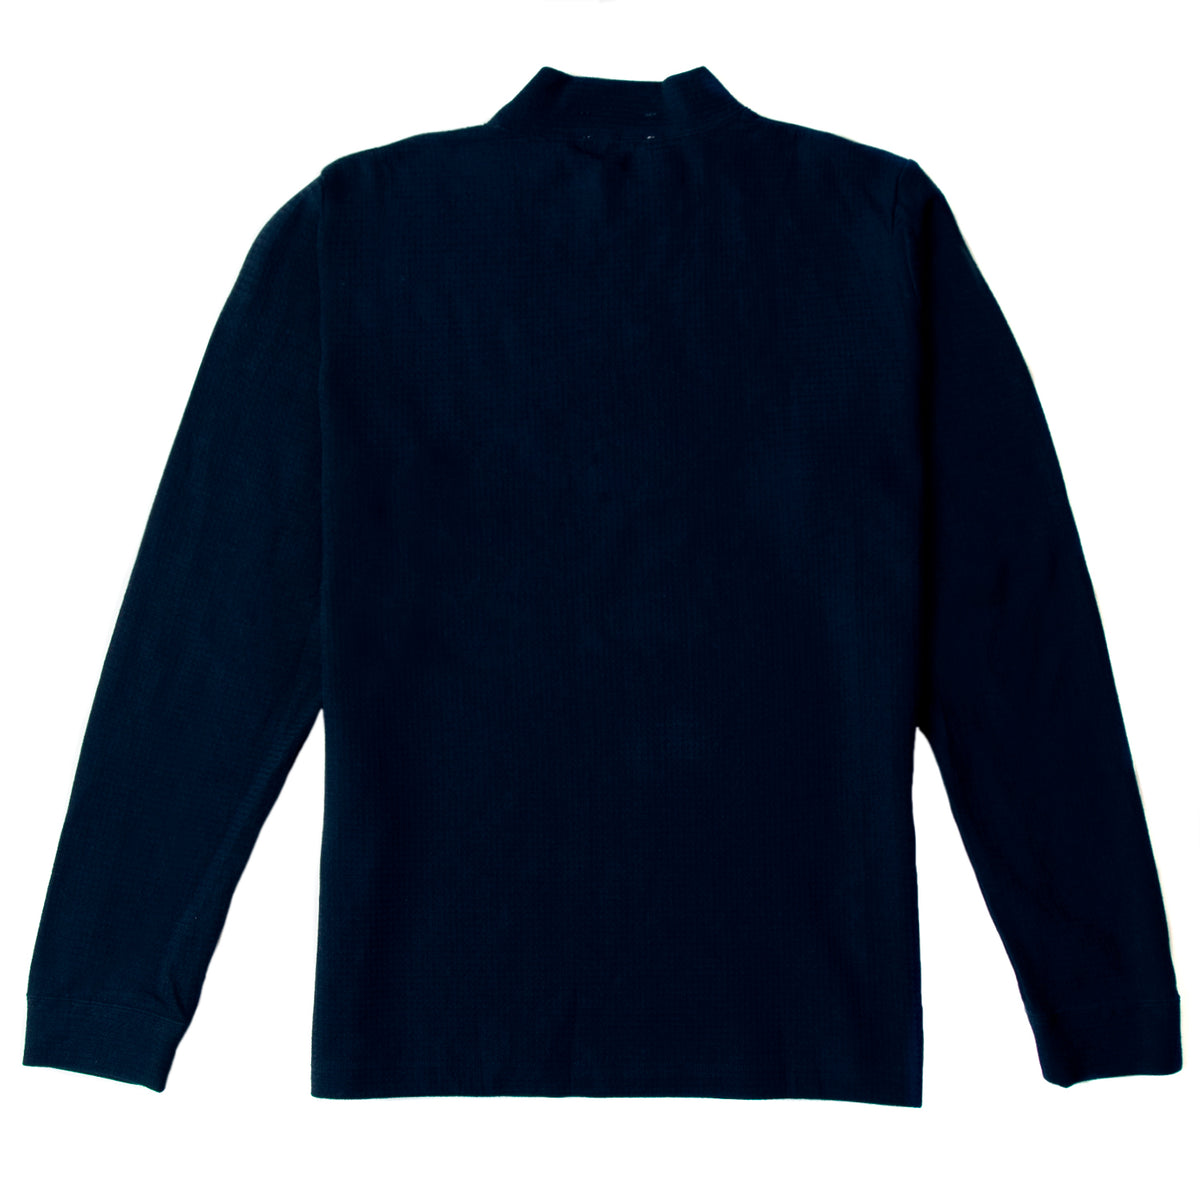 A.B.C.L. - Calm Knit - Navy